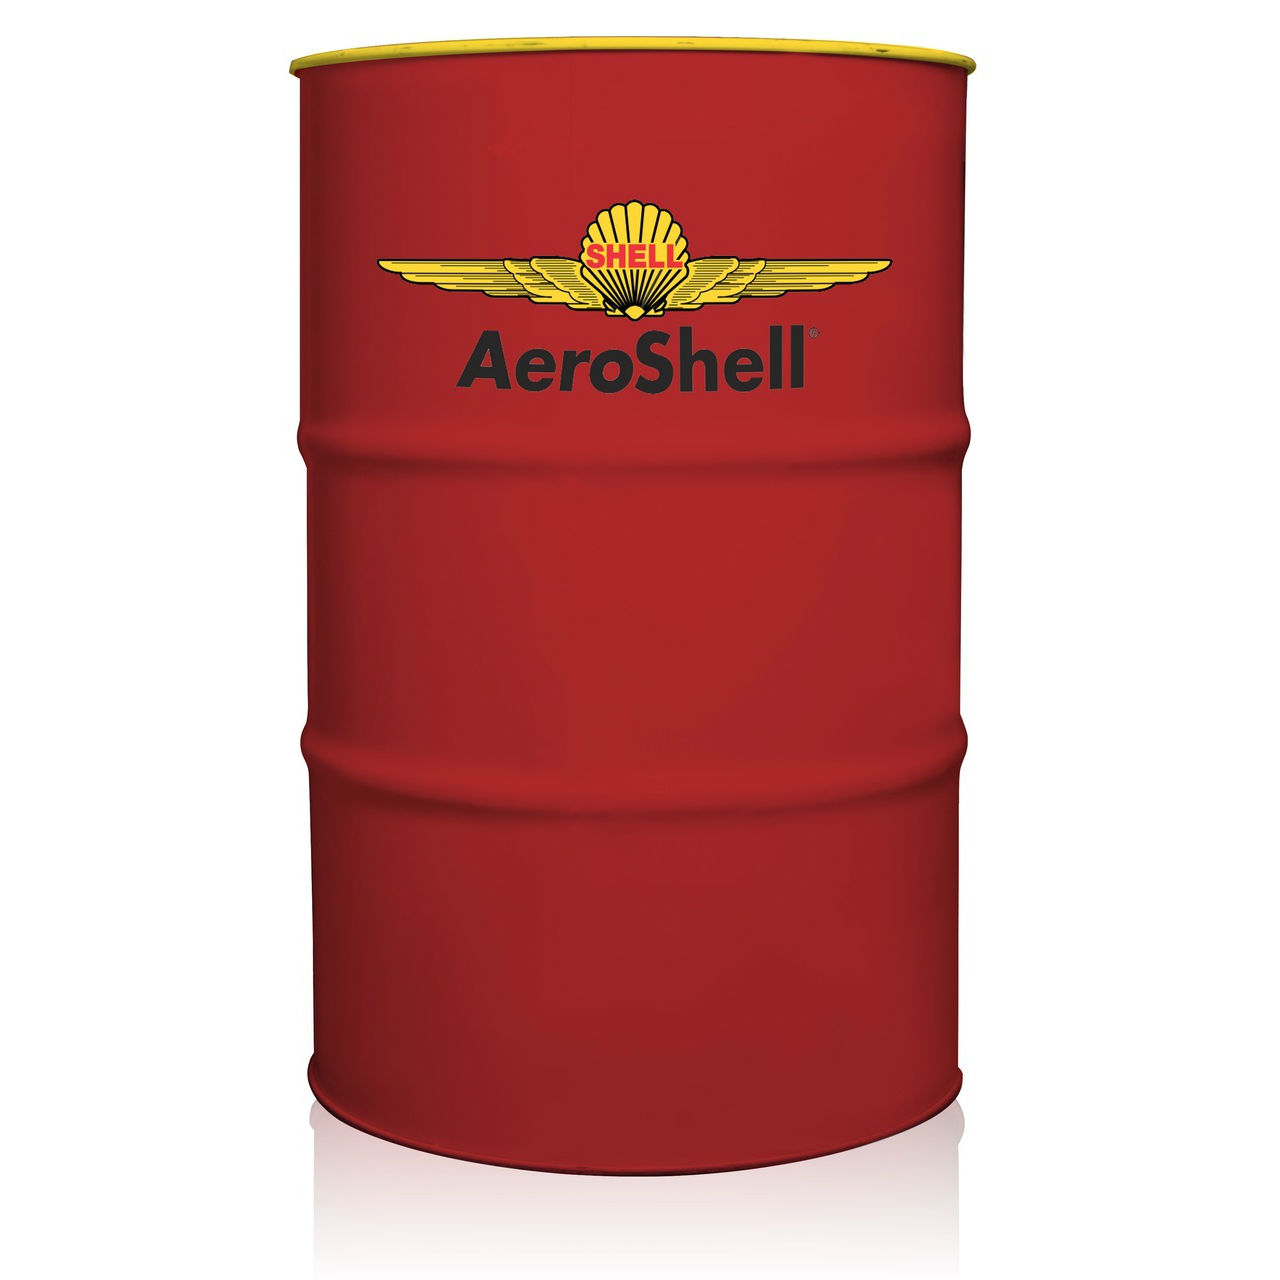 AeroShell Oil W80 - 55 Gallon Drum